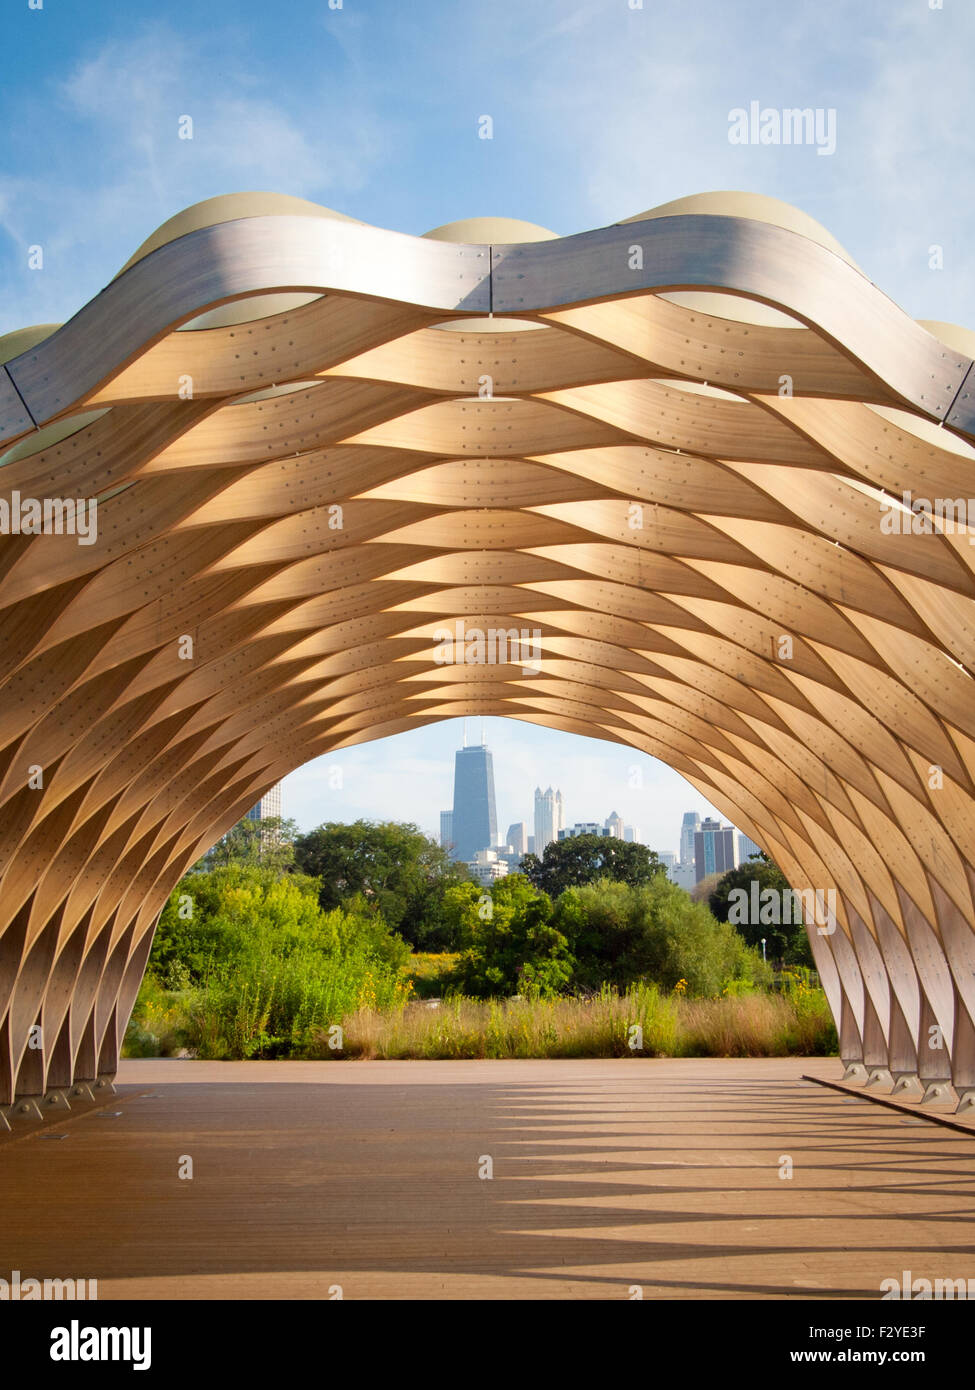 A view of the John Hancock Center as seen through the People's Gas Education Pavilion in Lincoln Park, Chicago. - Stock Image